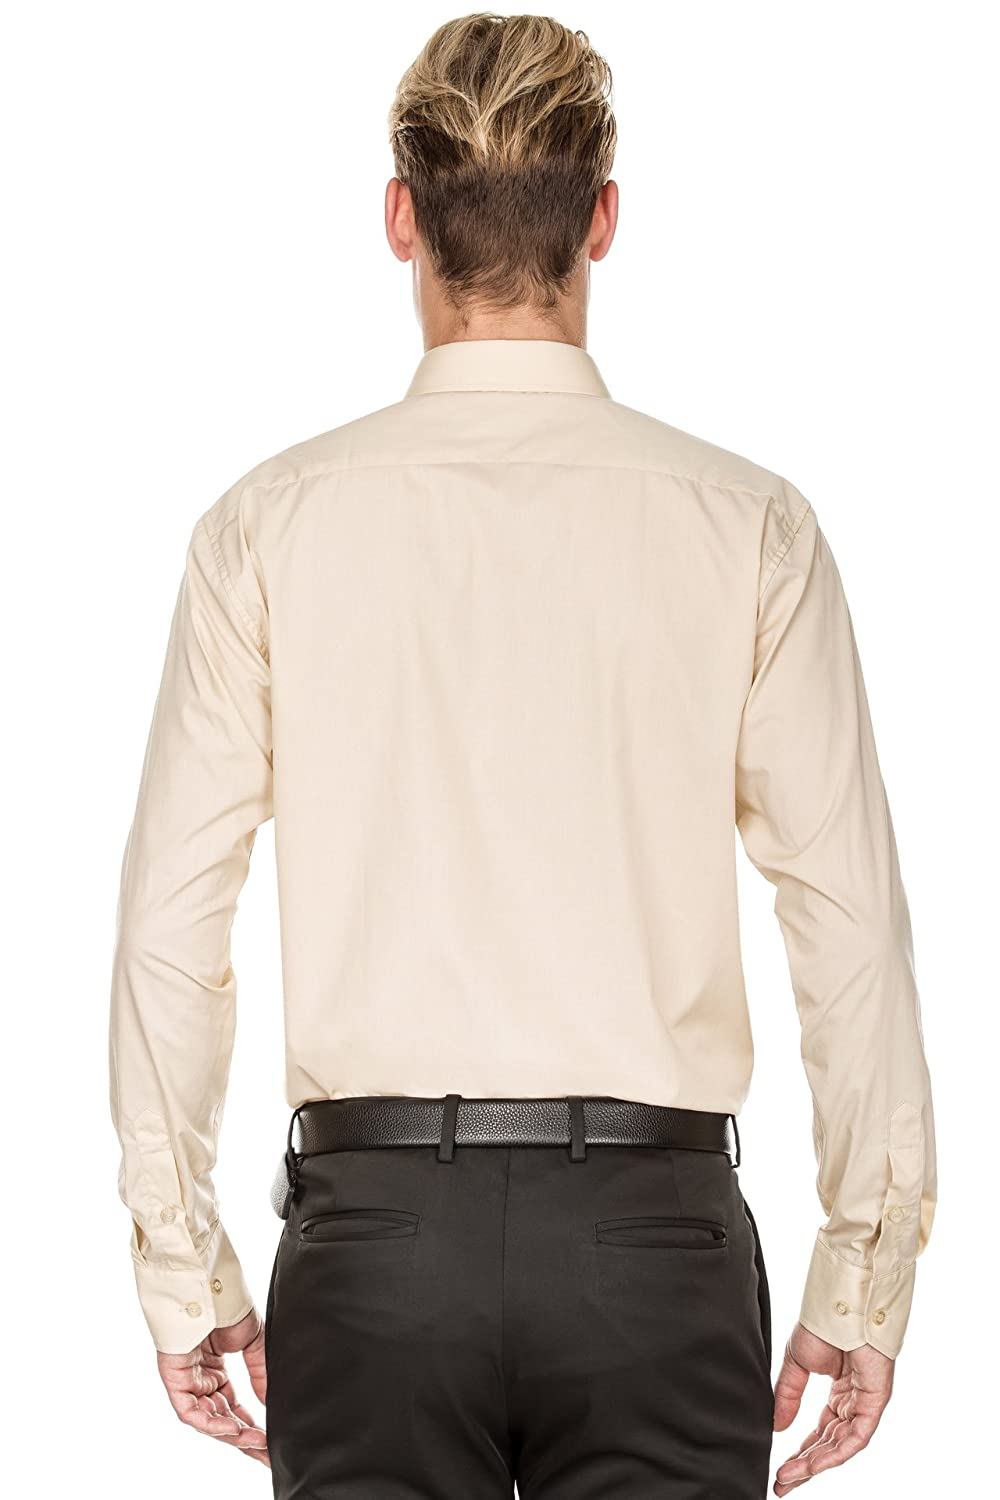 Luxton Men/'s Regular Fit Long Sleeve Cotton Poly Dress Shirt Available in More Colors